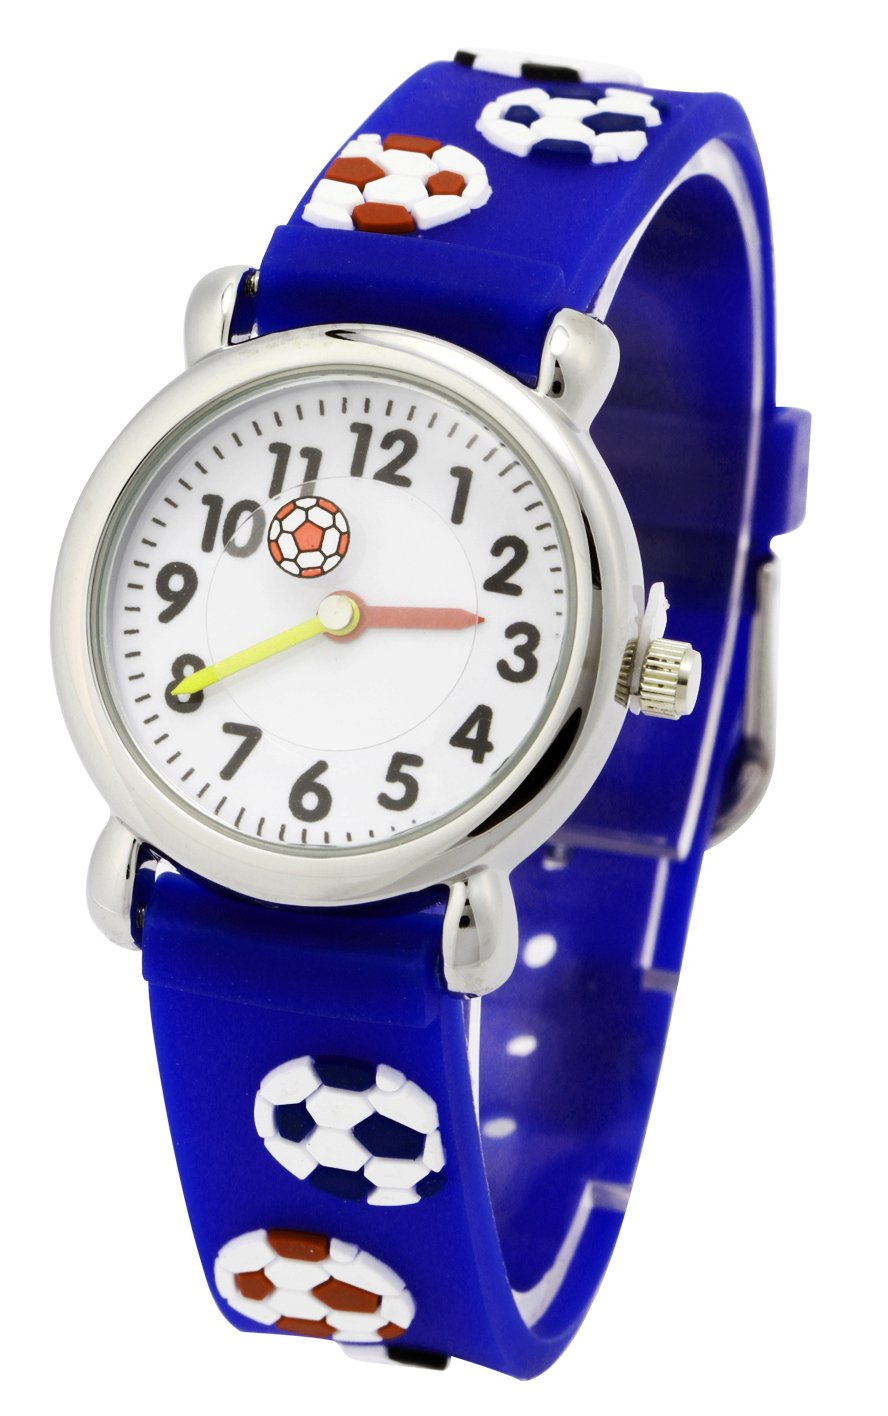 cap jacques girls set watches boys collections gift watch kids farel soccer